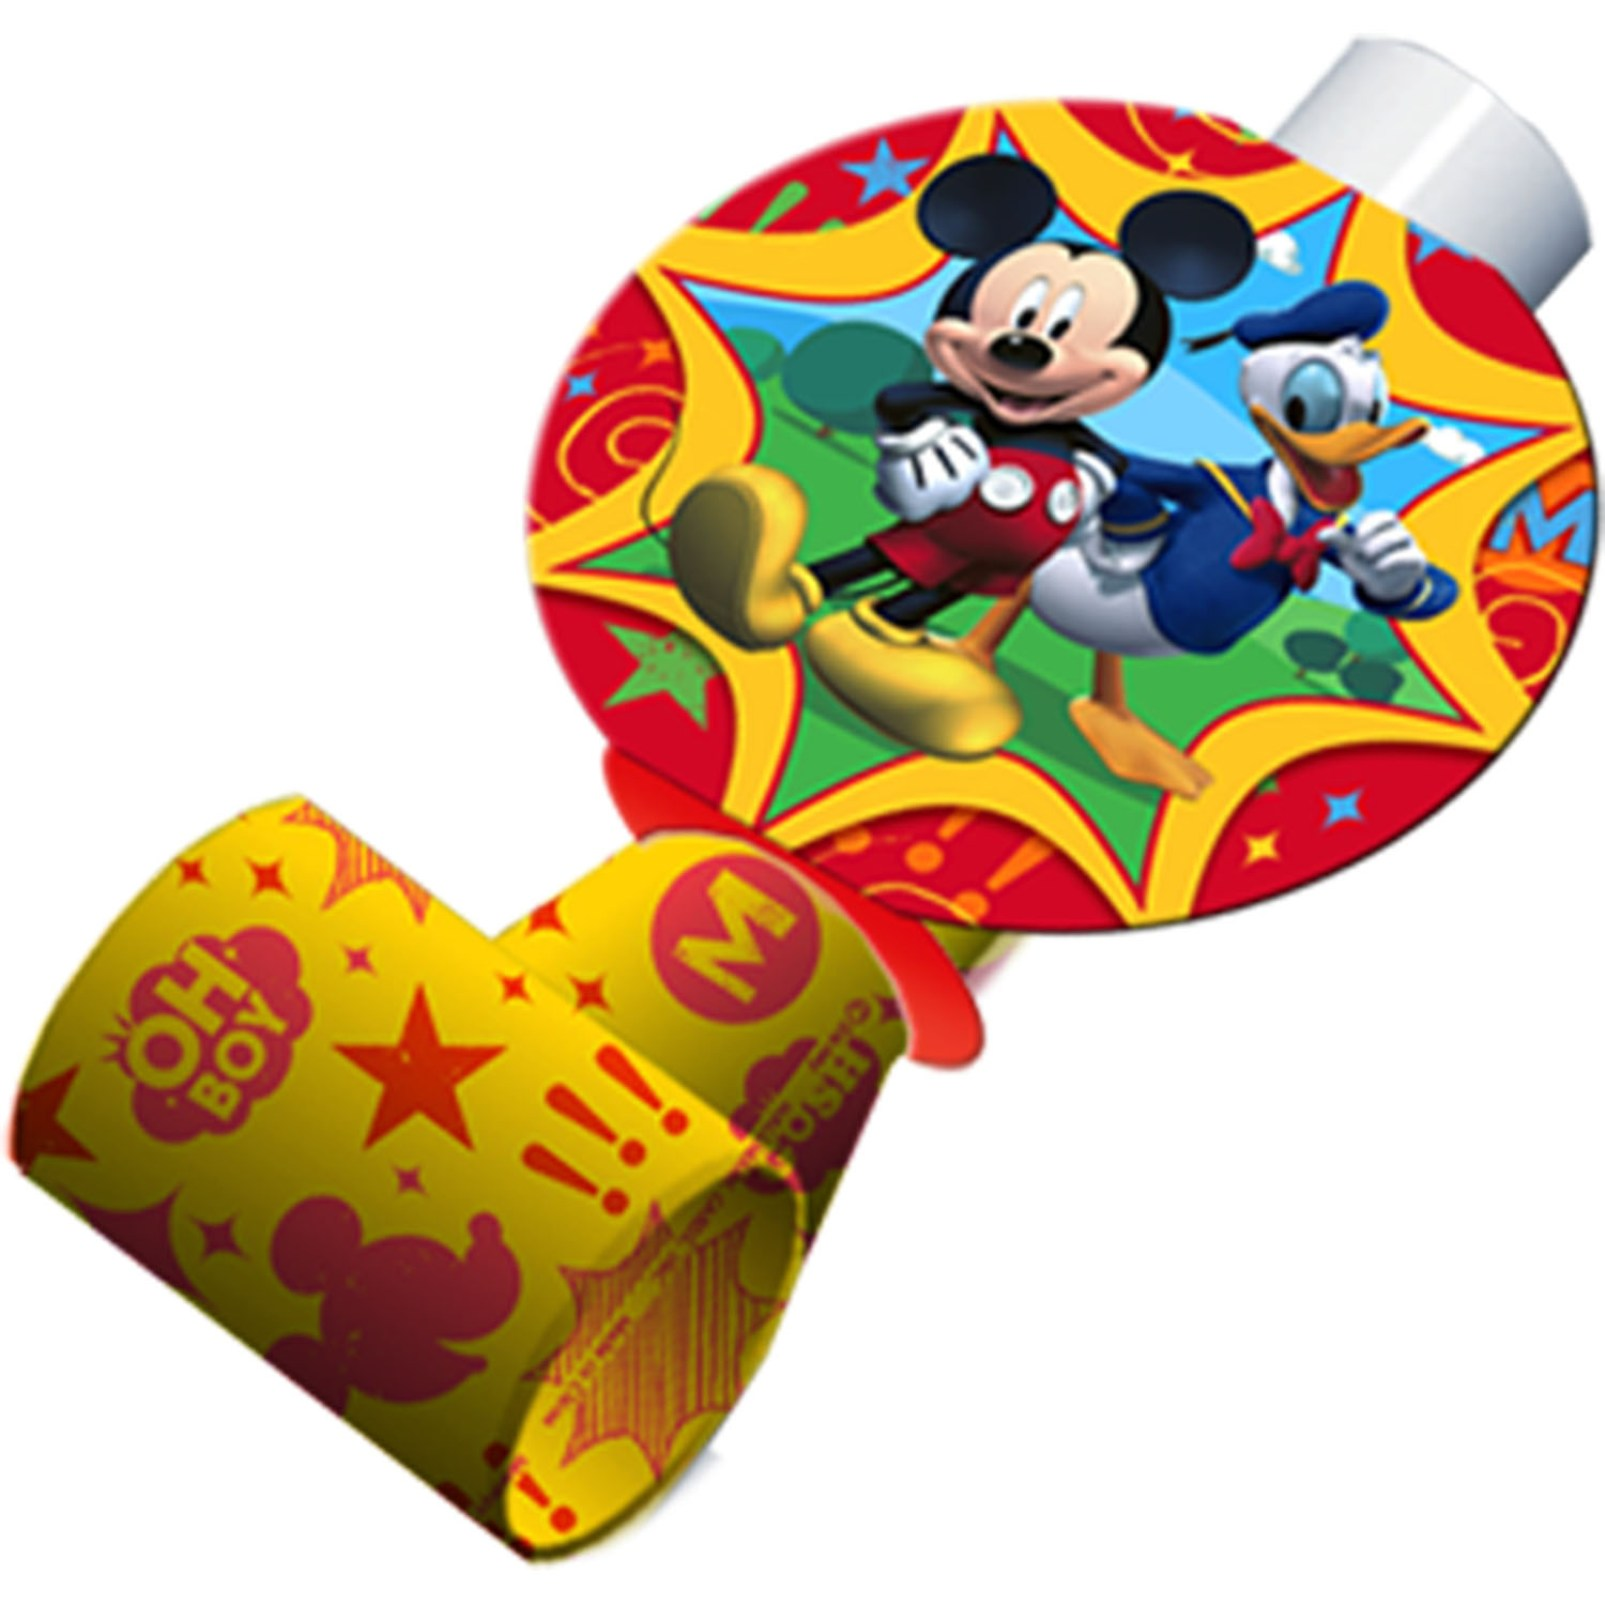 Disney Mickey Mouse Blowout, 8 ct. PartNumber: 032W722990110001P KsnValue: 72299011 MfgPartNumber: 1BLW2388